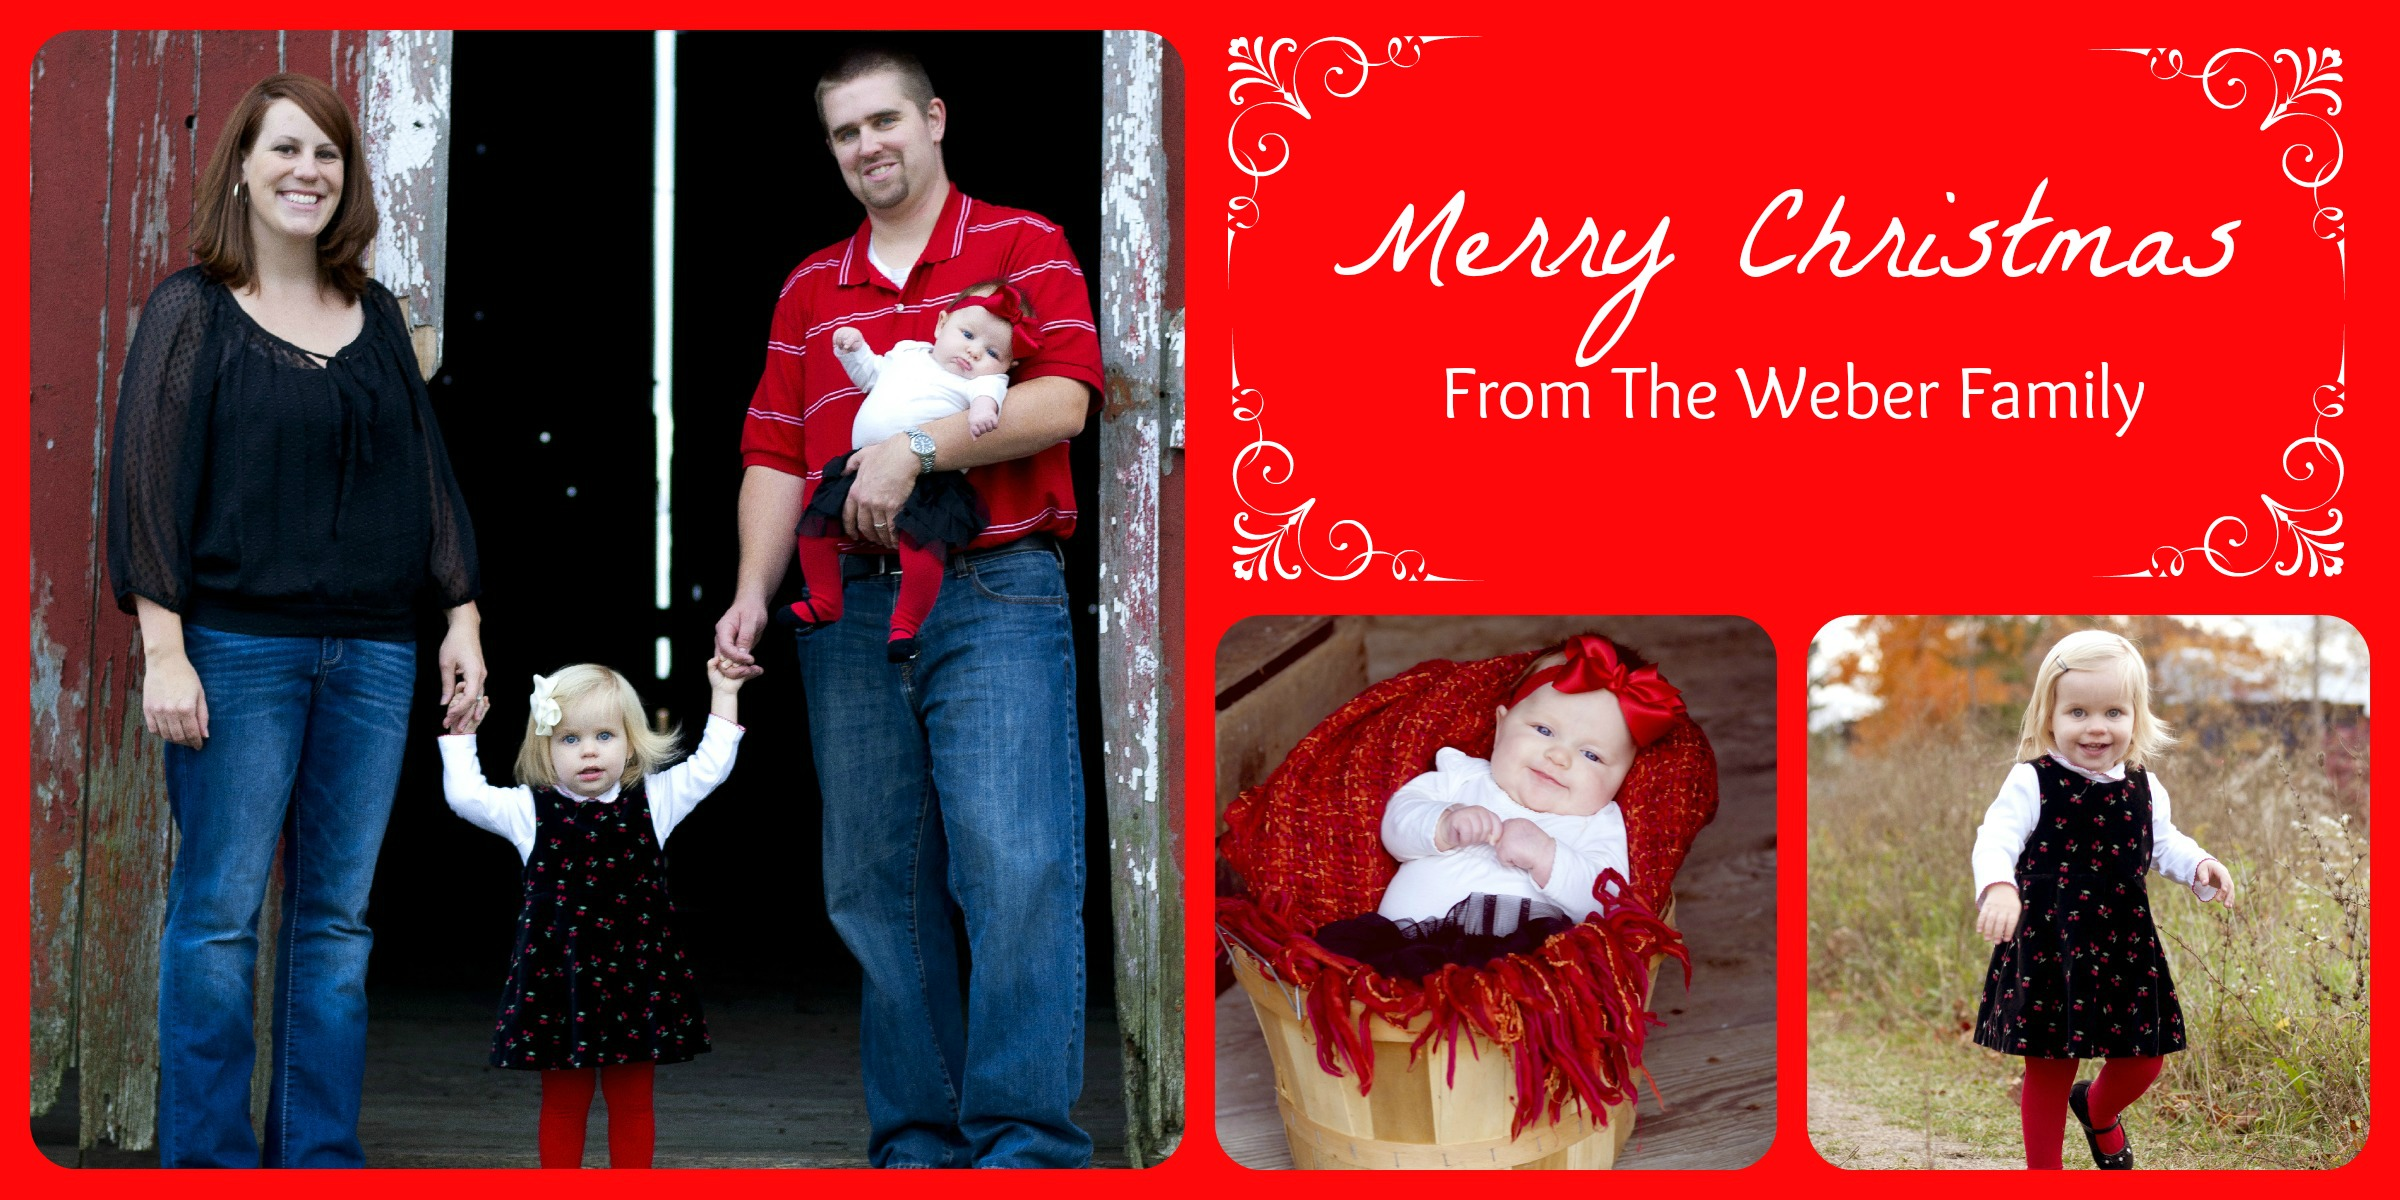 Weber Christmas Collage